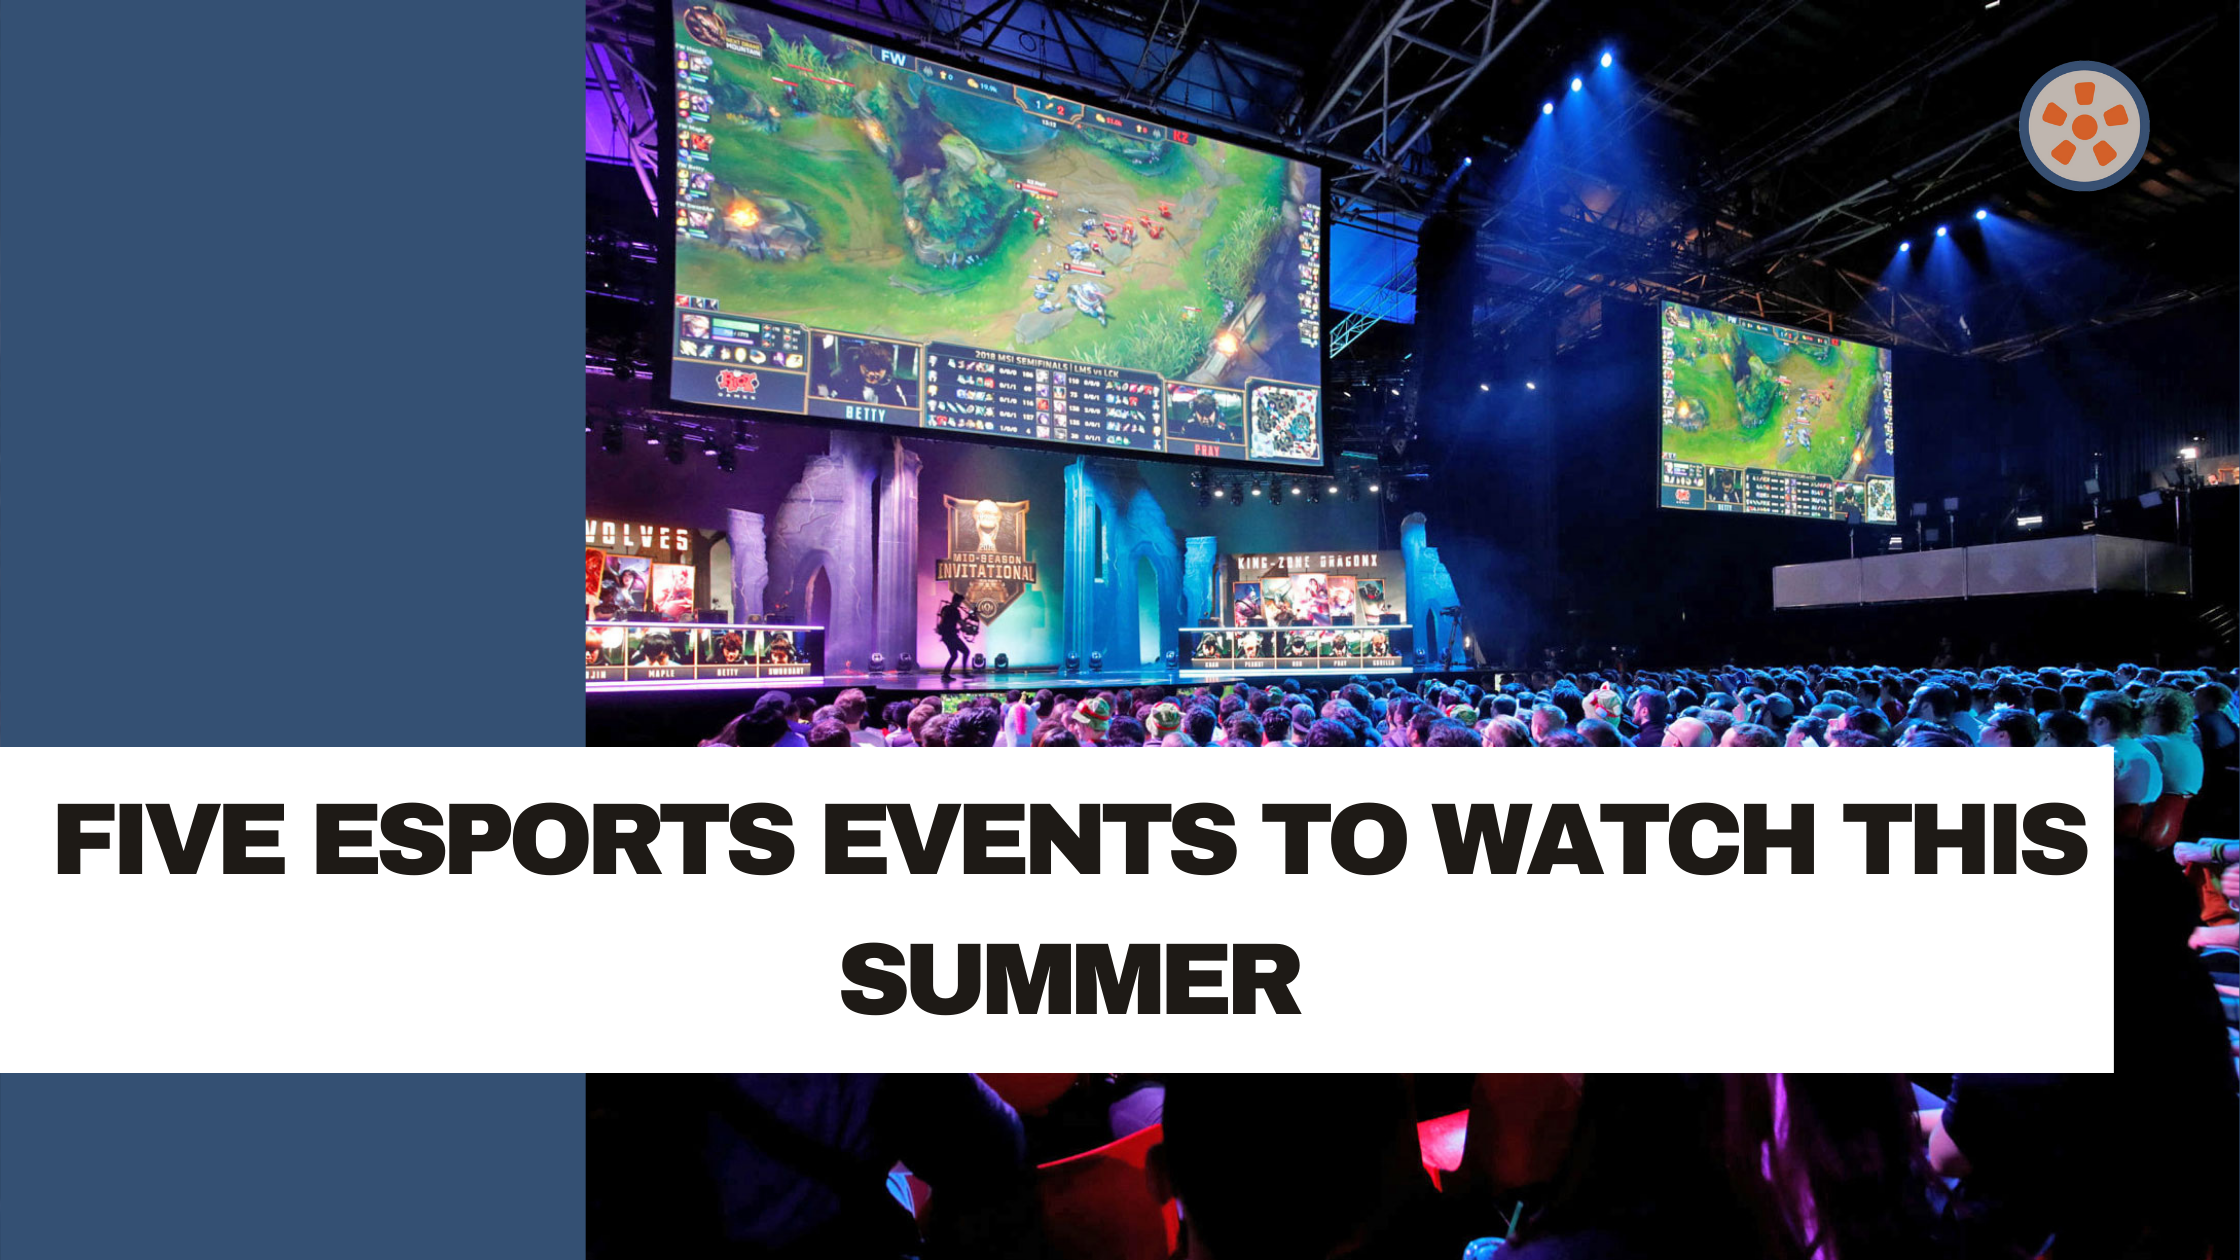 Five Esports Events To Watch This Summer